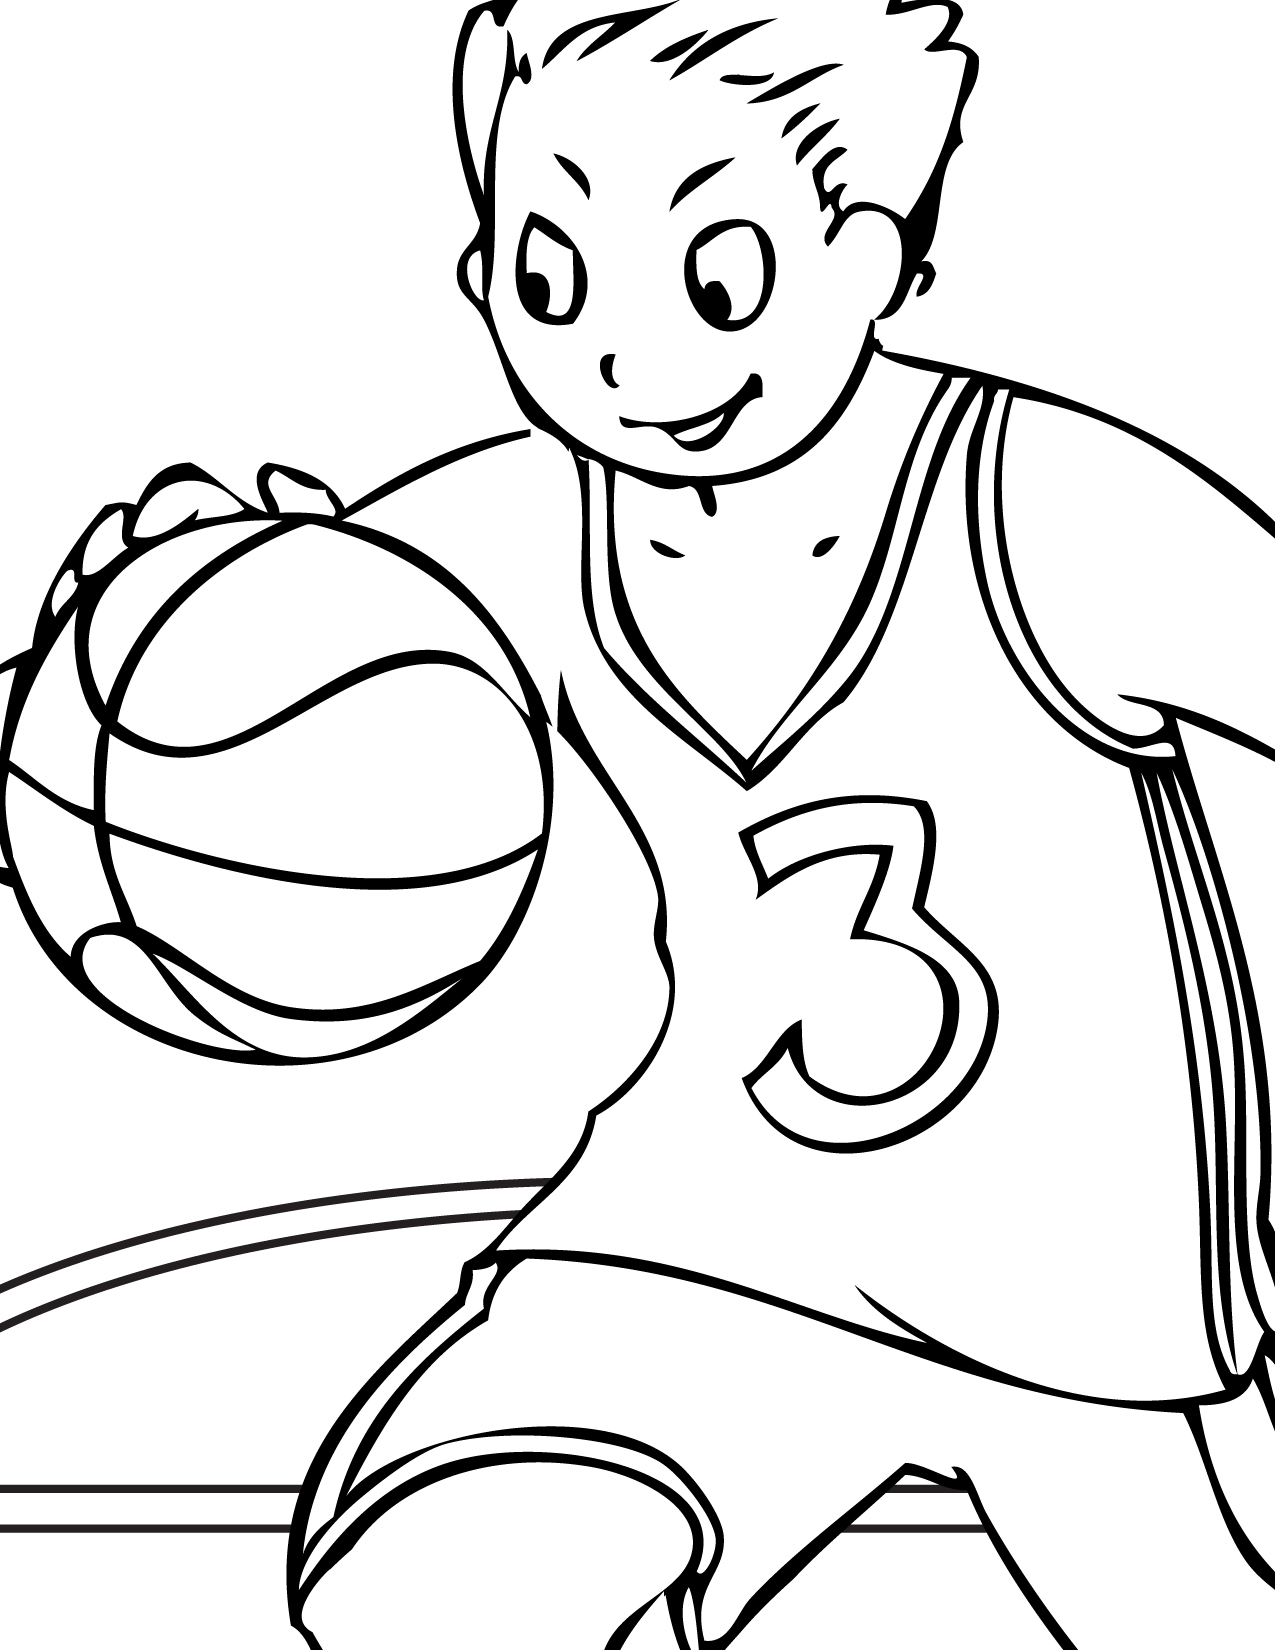 Basketball Coloring Page Handipoints